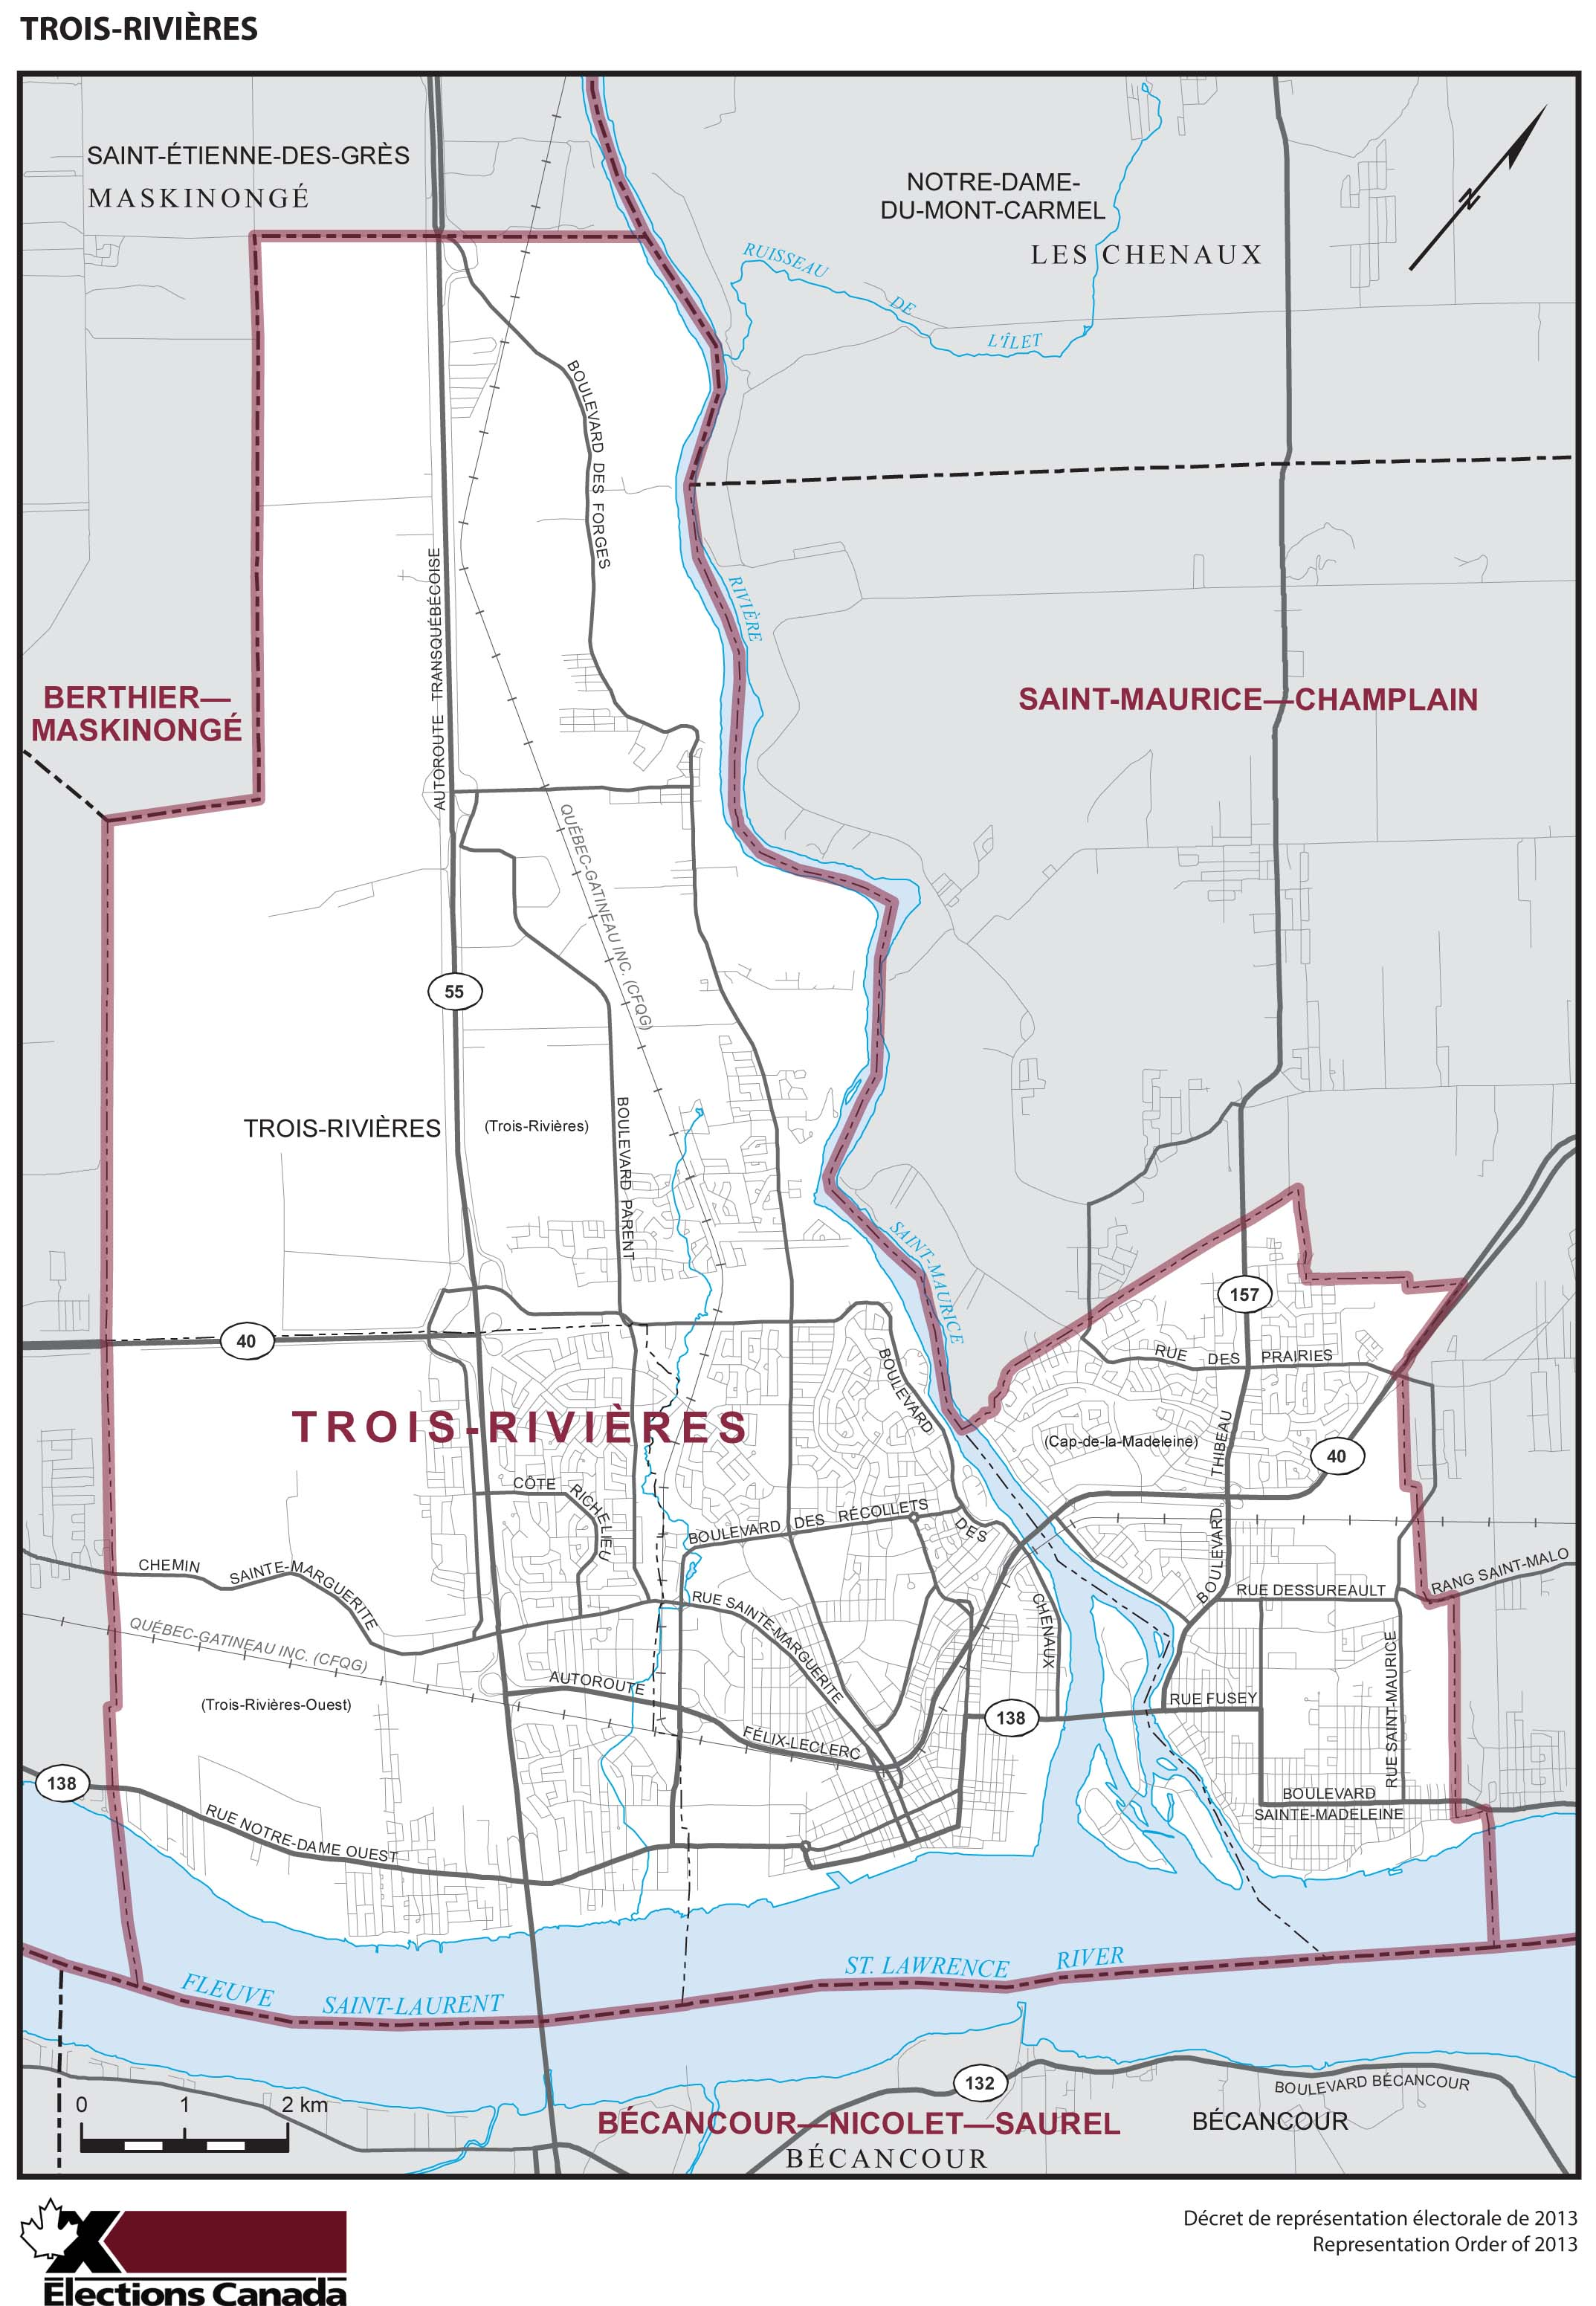 Map: Trois-Rivières, Federal electoral district, 2013 Representation Order (in white), Quebec